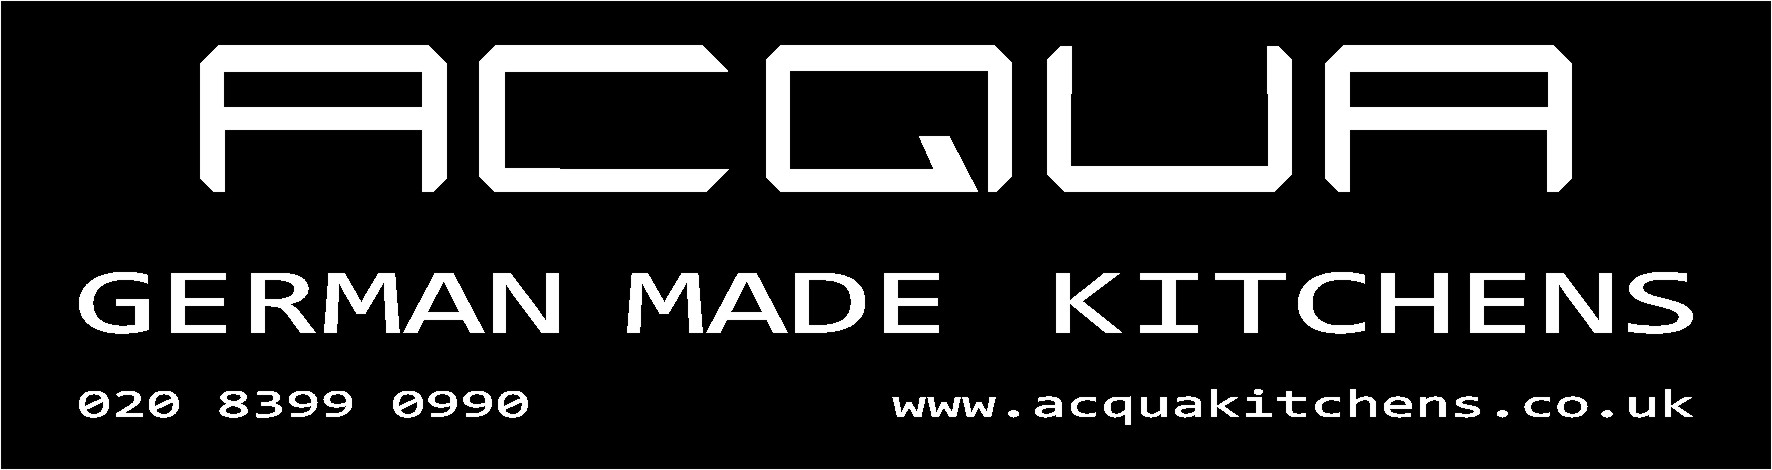 Acqua German Made Kitchens - Logo.jpg